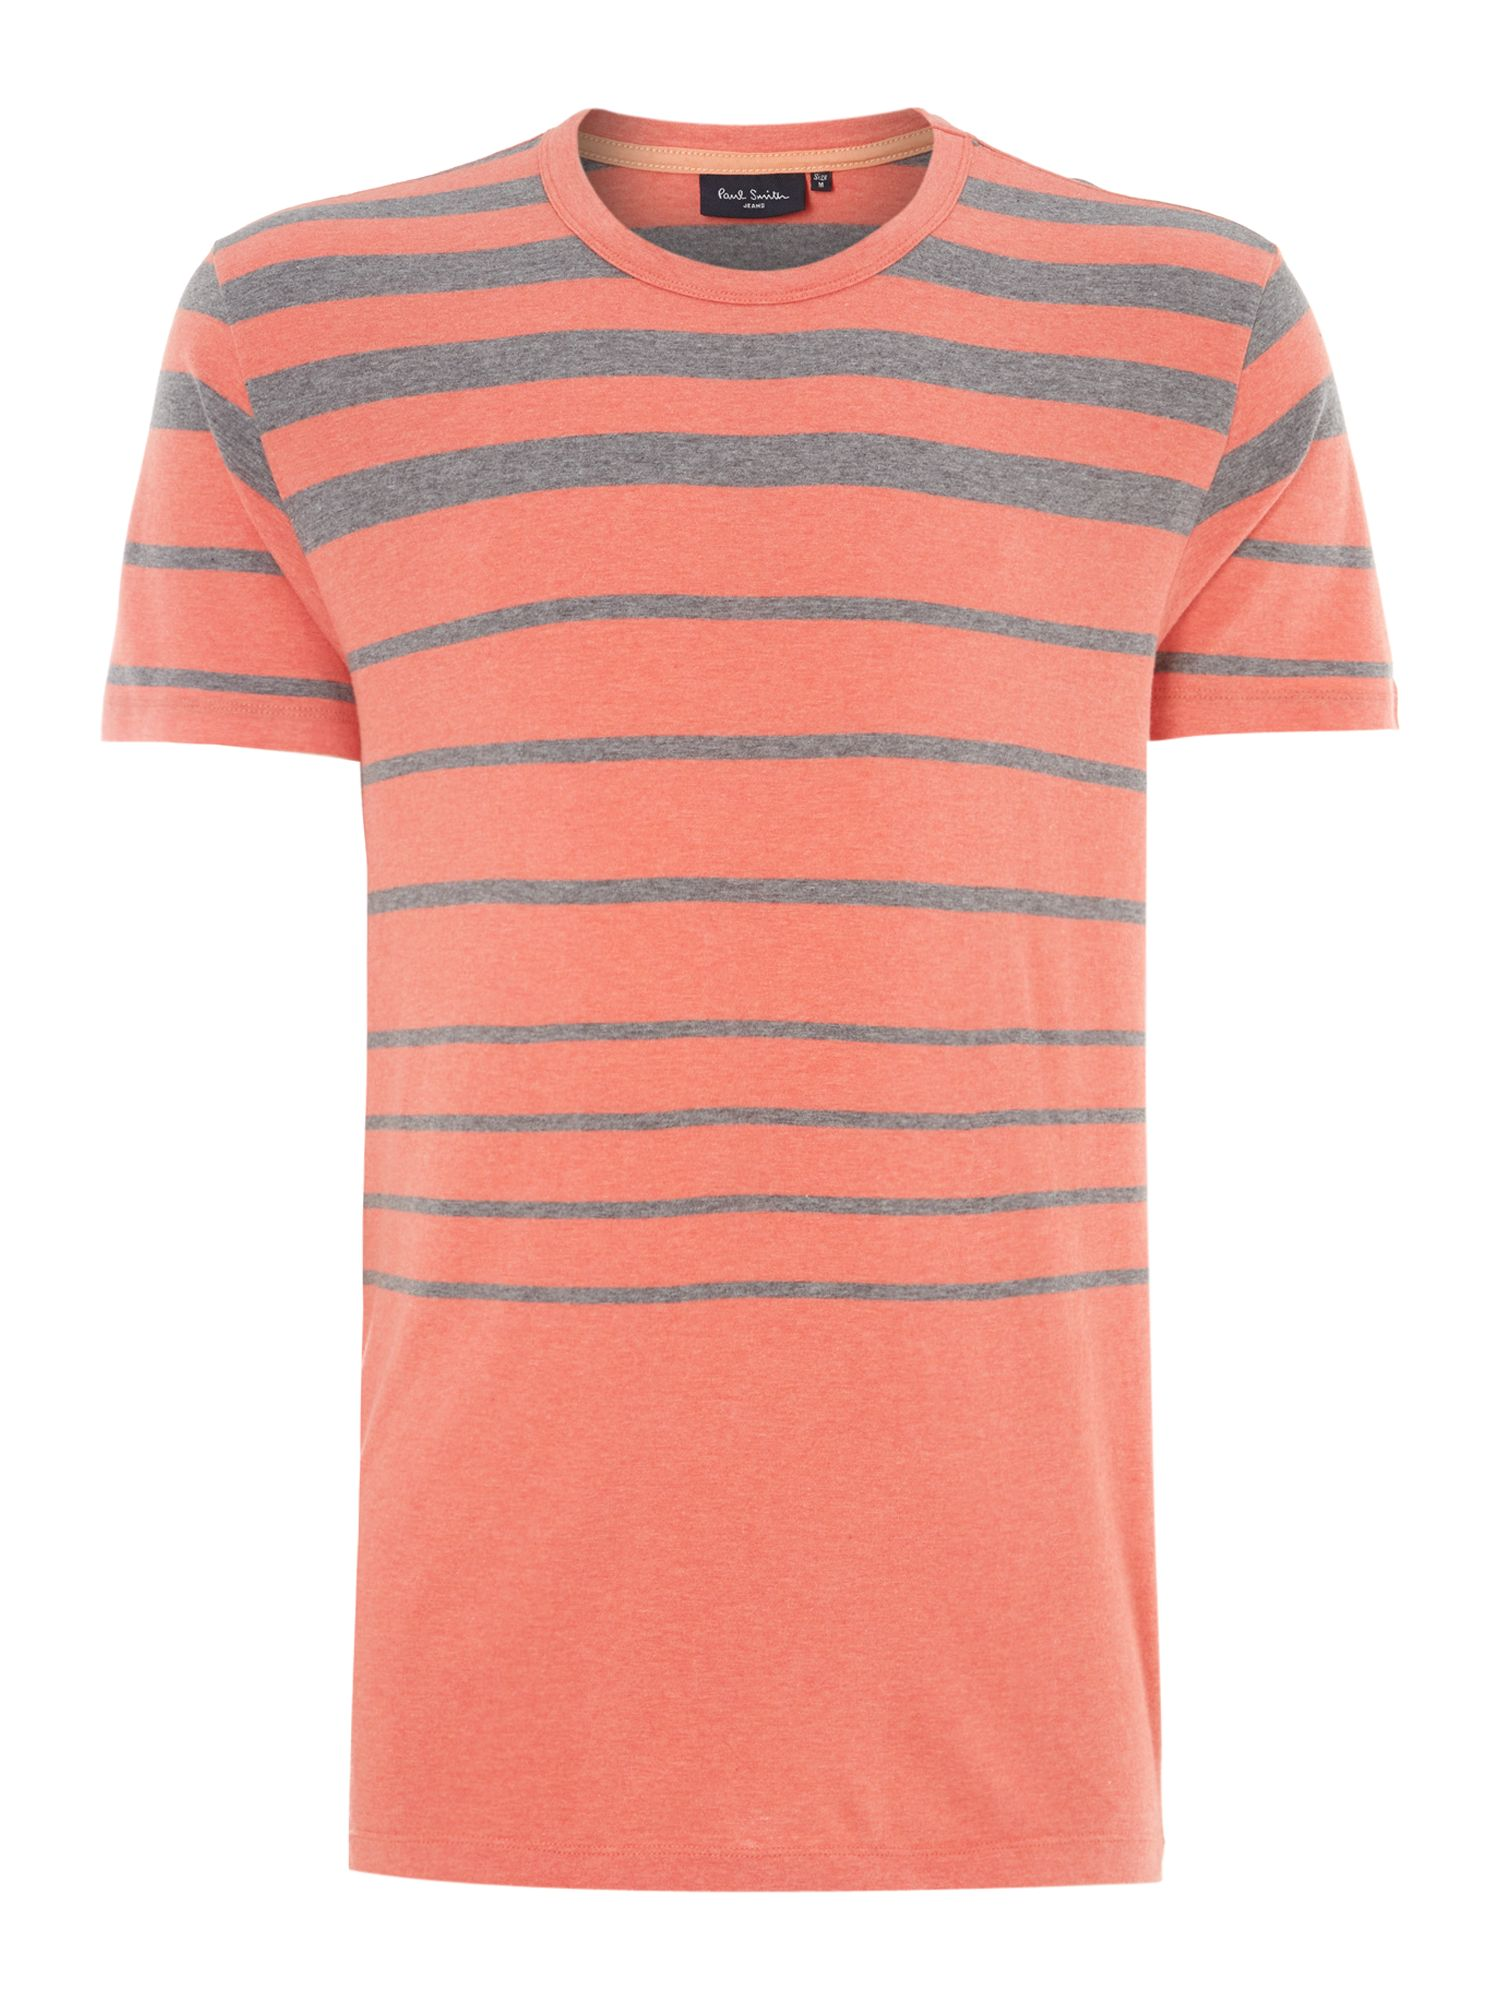 Gradient stripe t-shirt